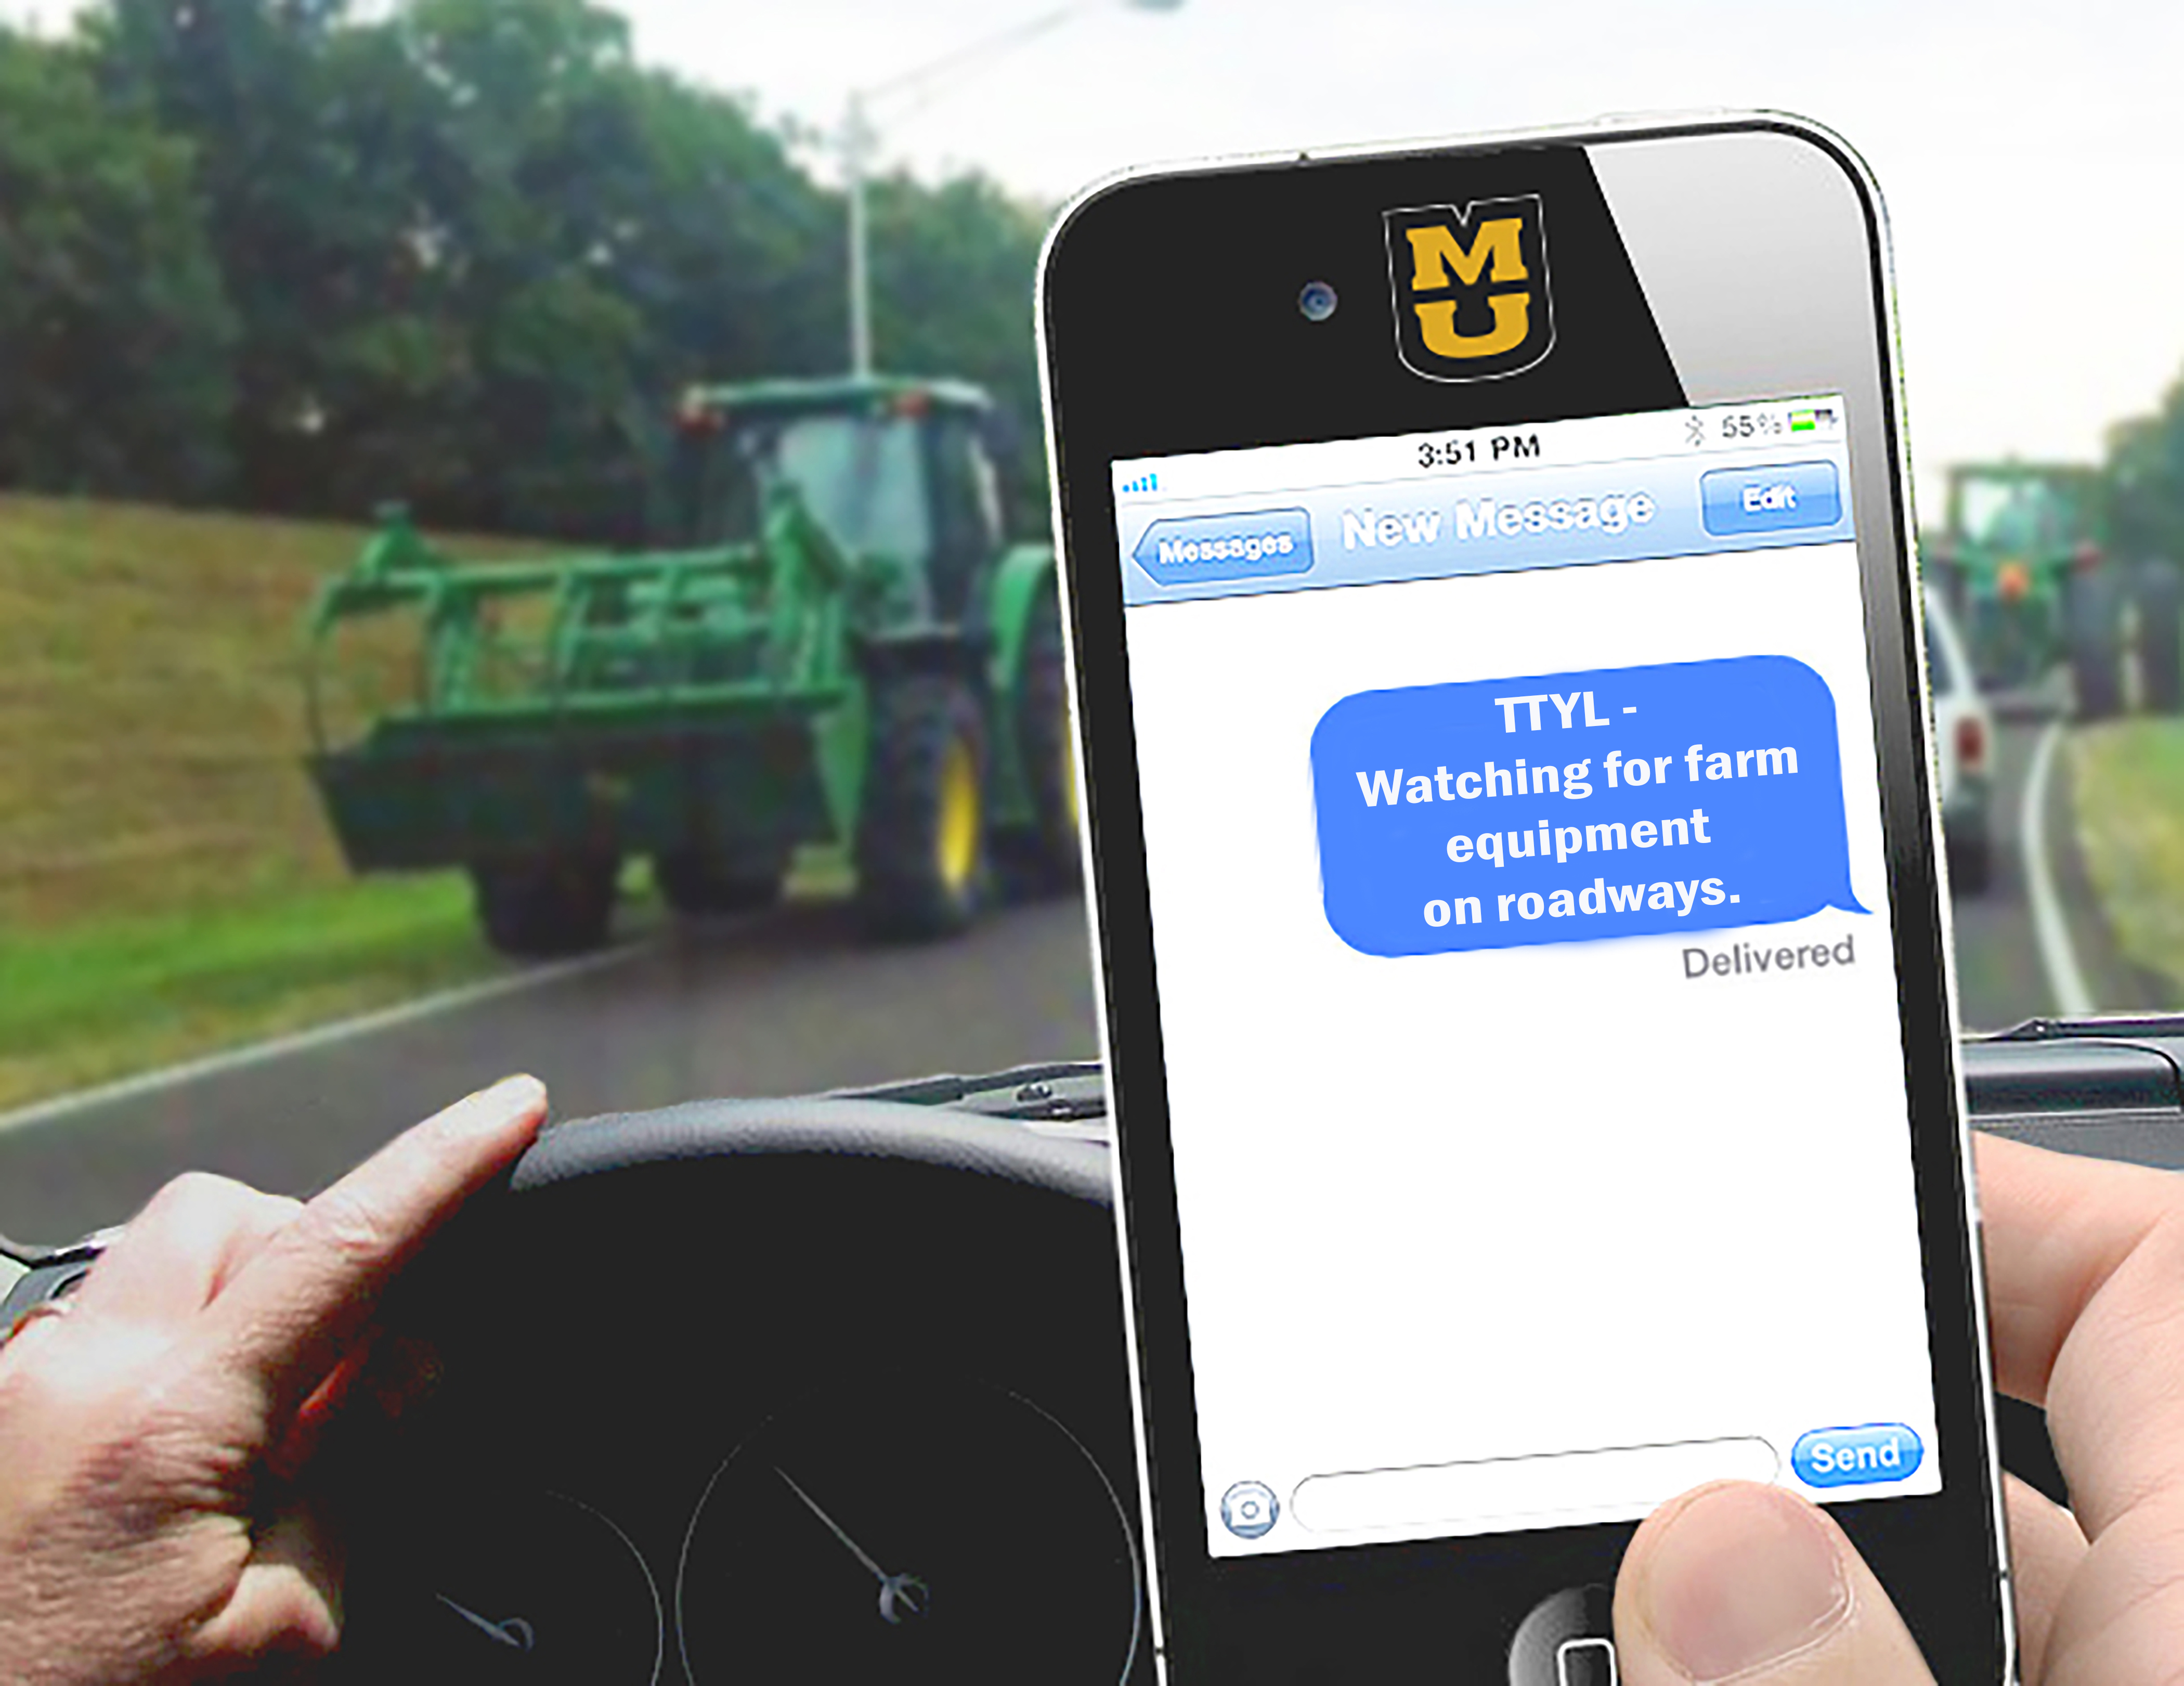 During harvest season the danger of texting and driving on rural roadways increases. 'TTYL' after harvest, says University of Missouri Extension safety and health specialist Karen Funkenbusch.